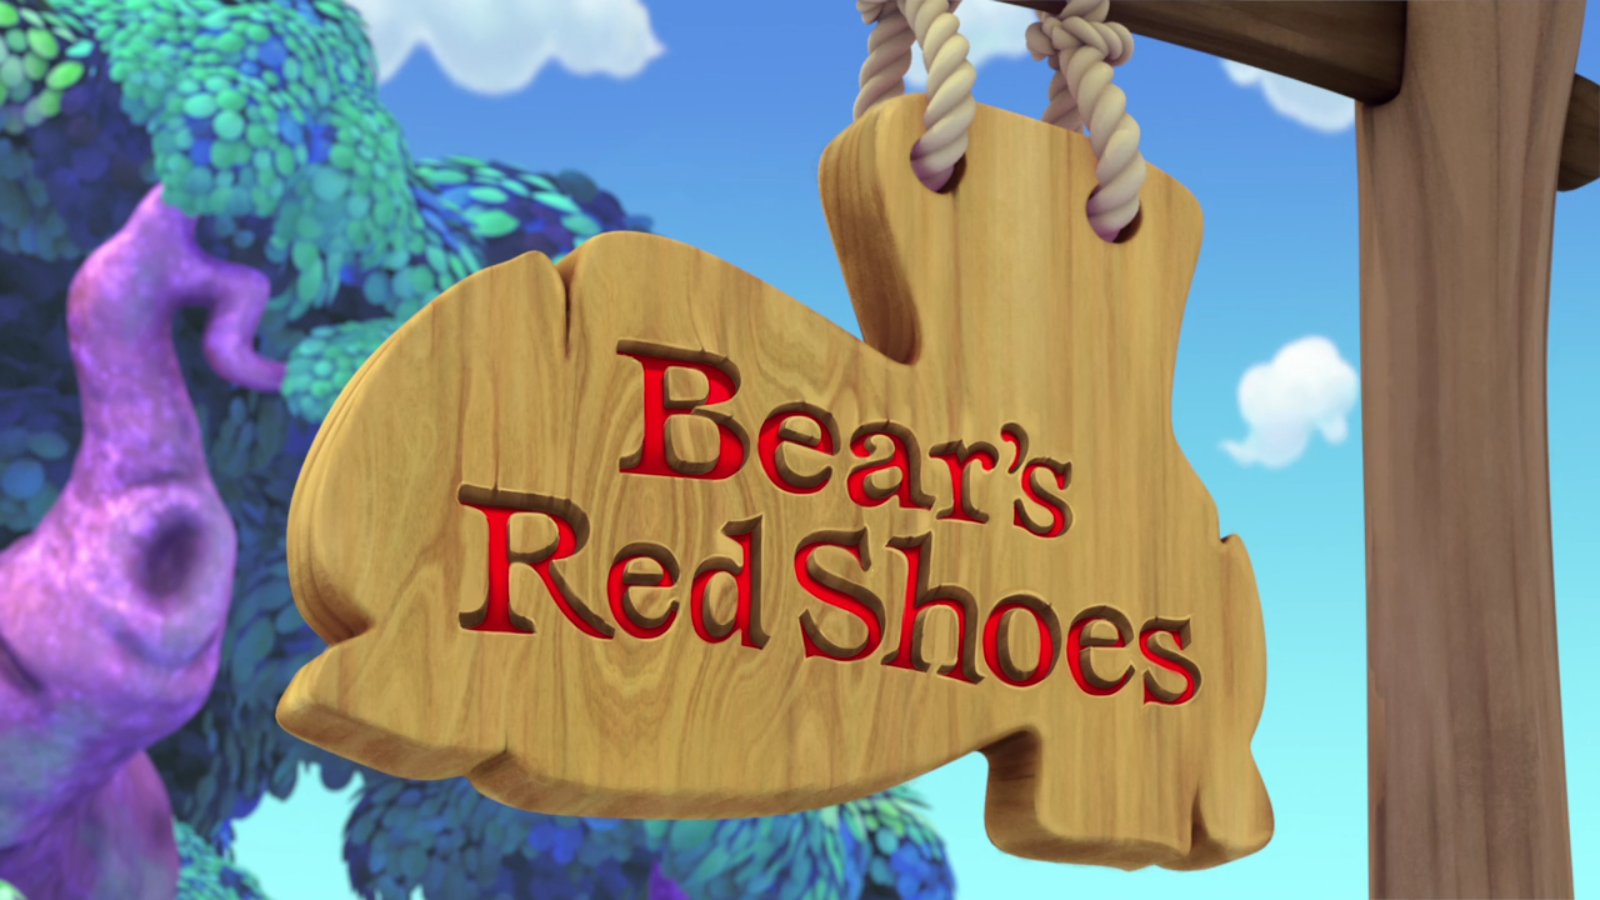 Bear's Red Shoes